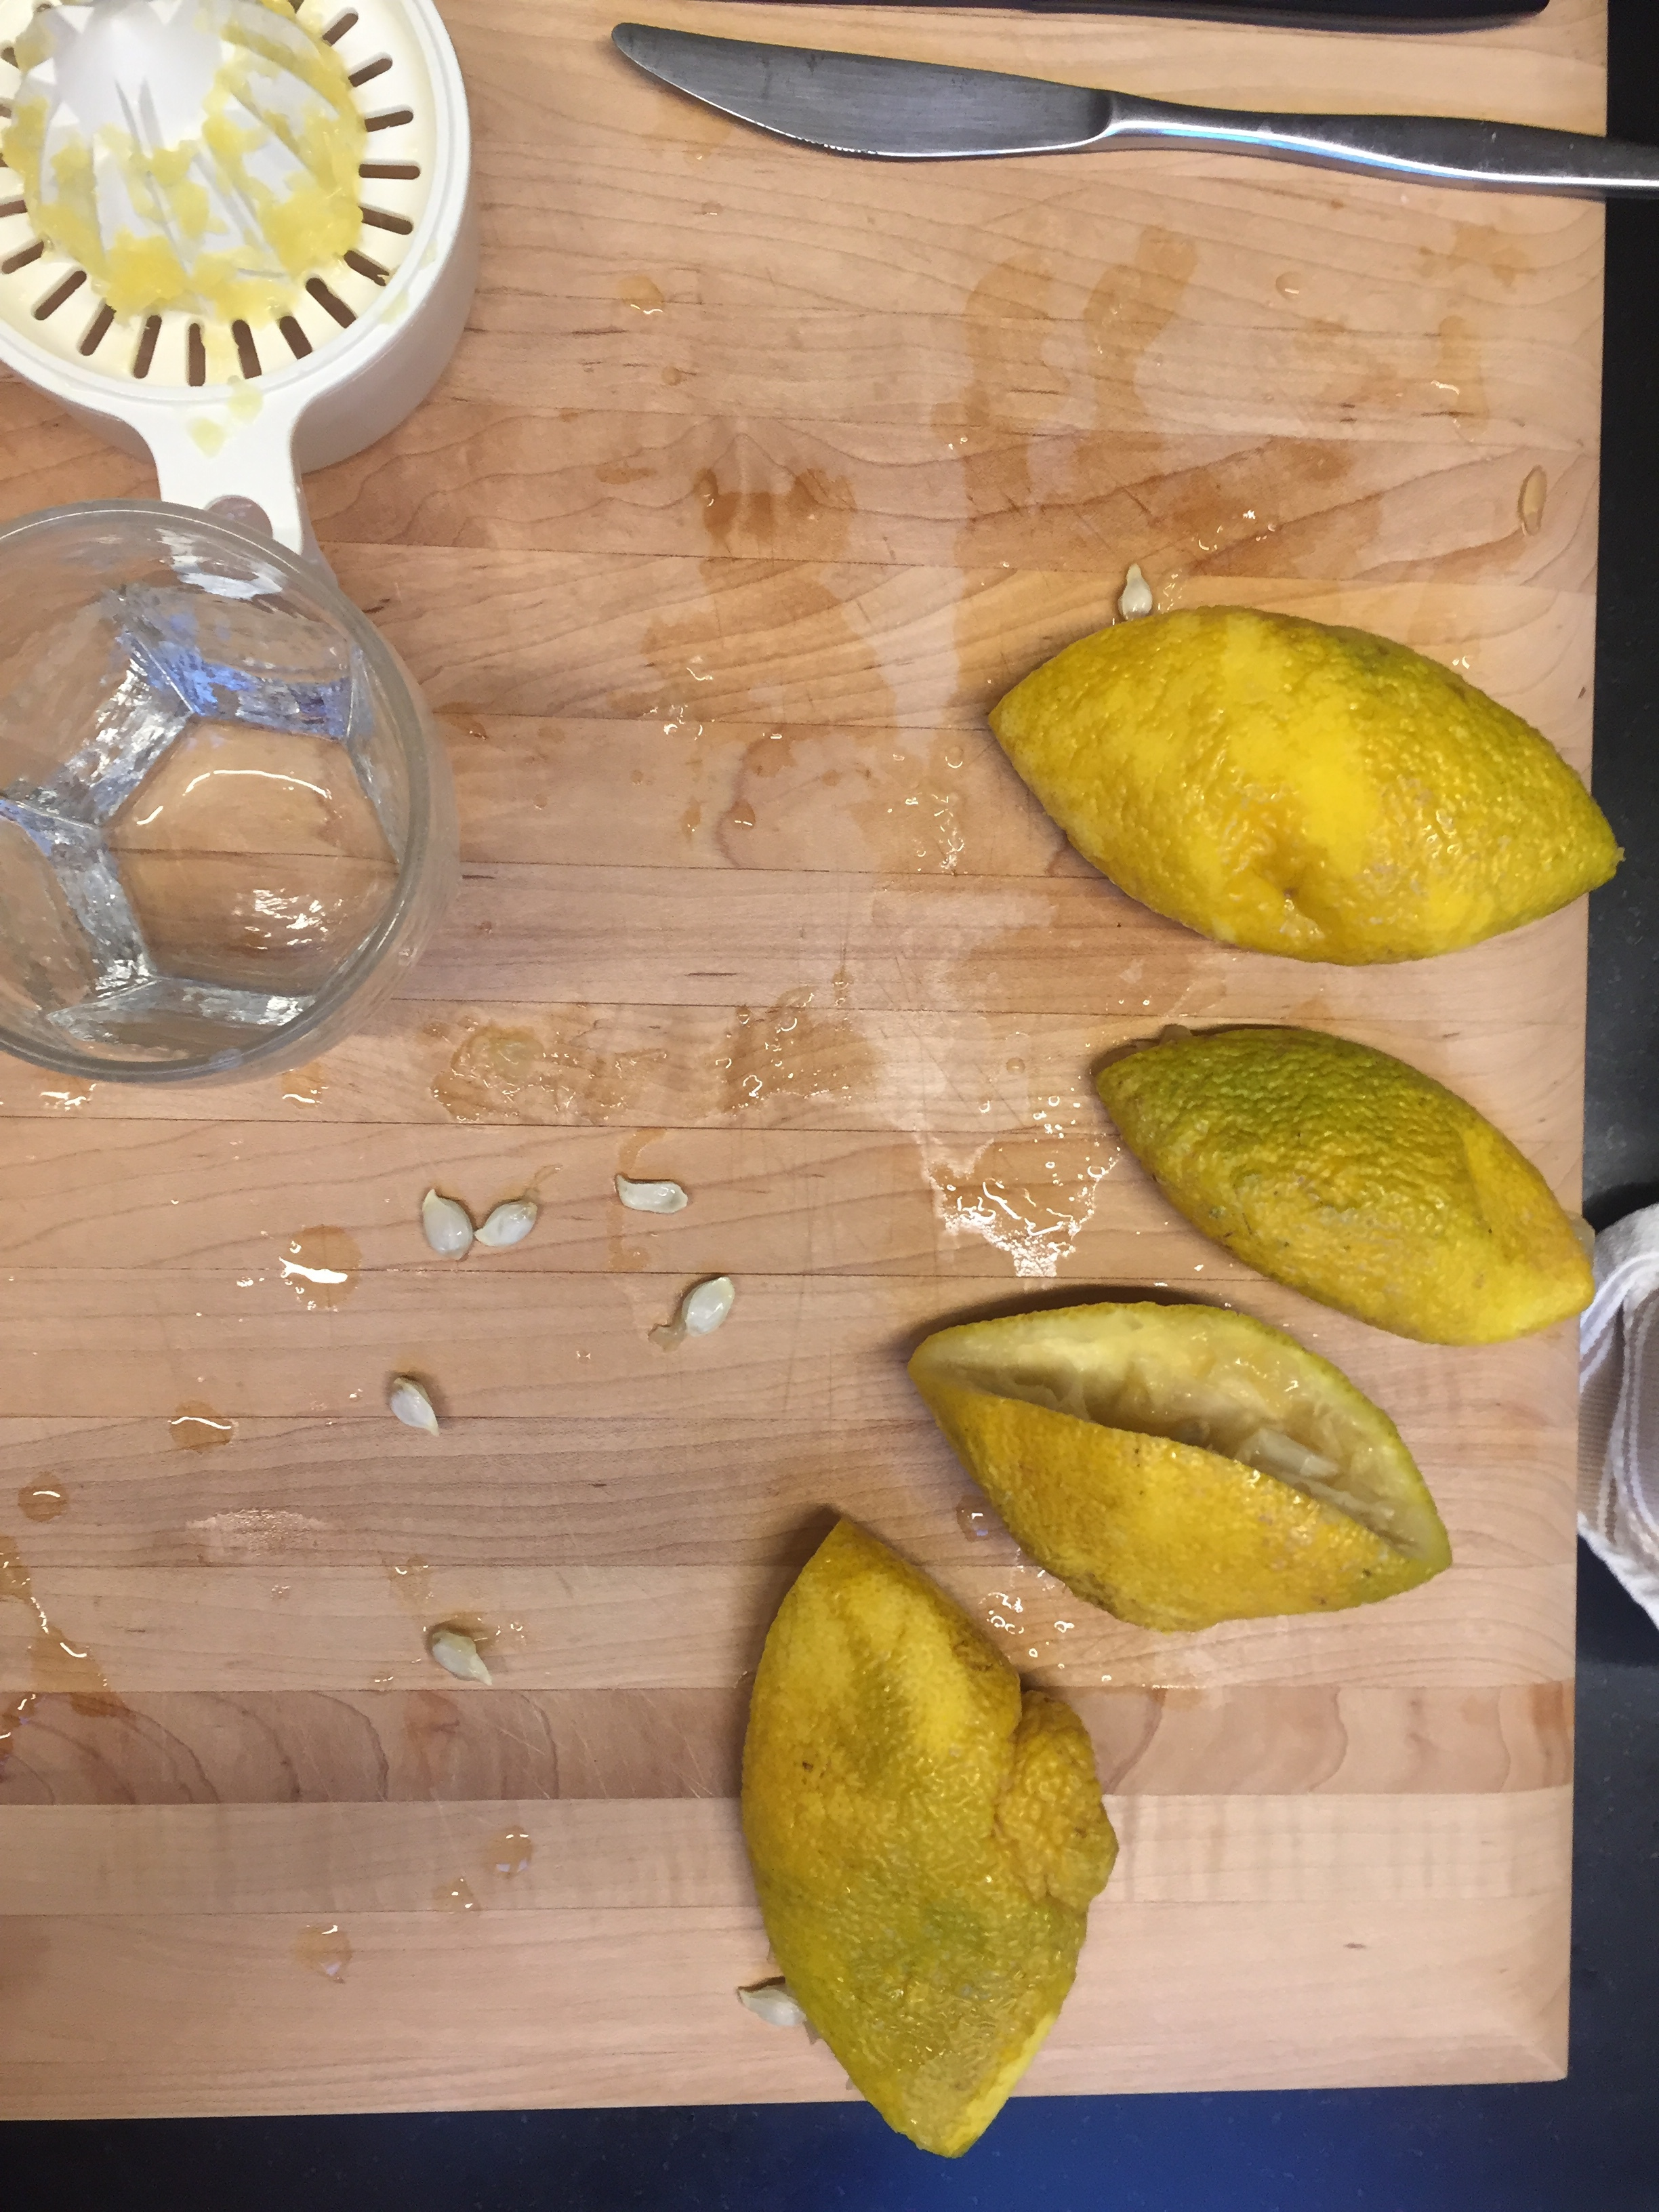 Juicing the Yuzu